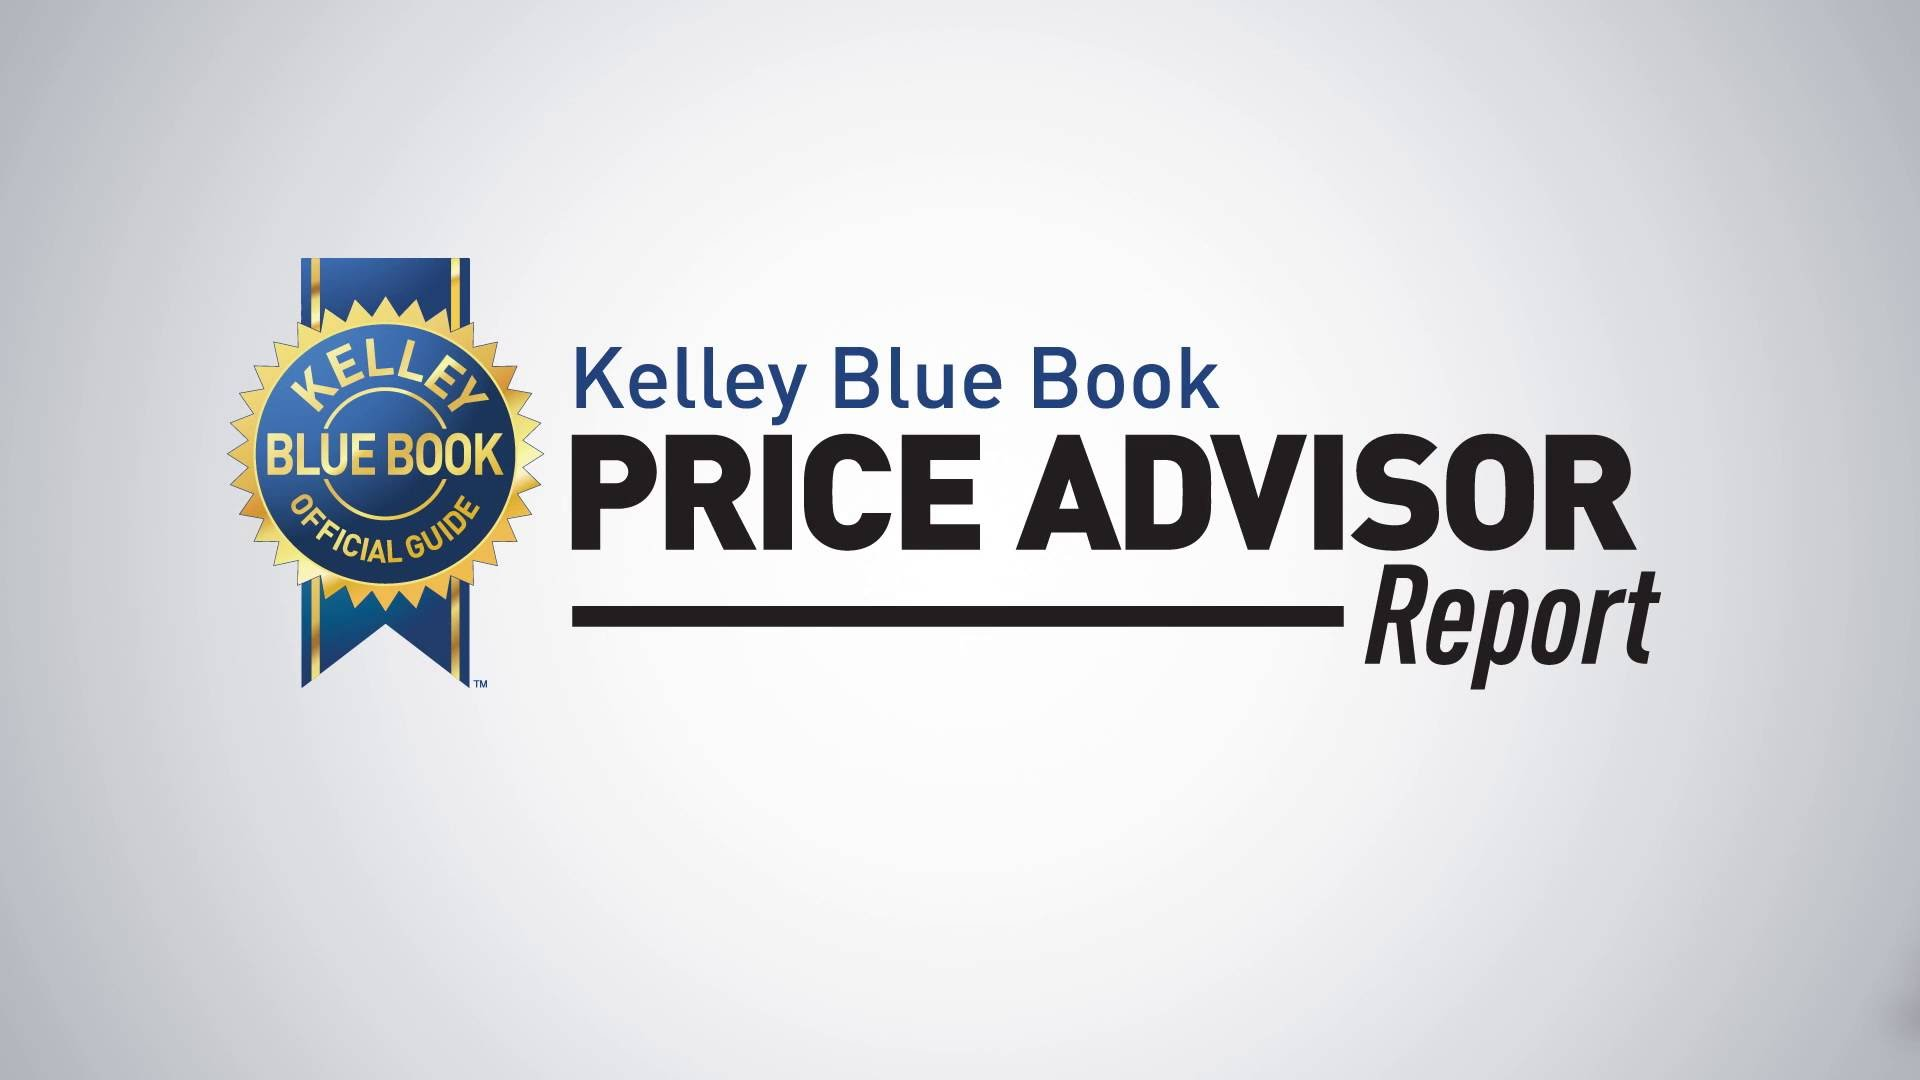 Blue Book Value for Cars Used Luxury Kelley Blue Book Price Advisor Report